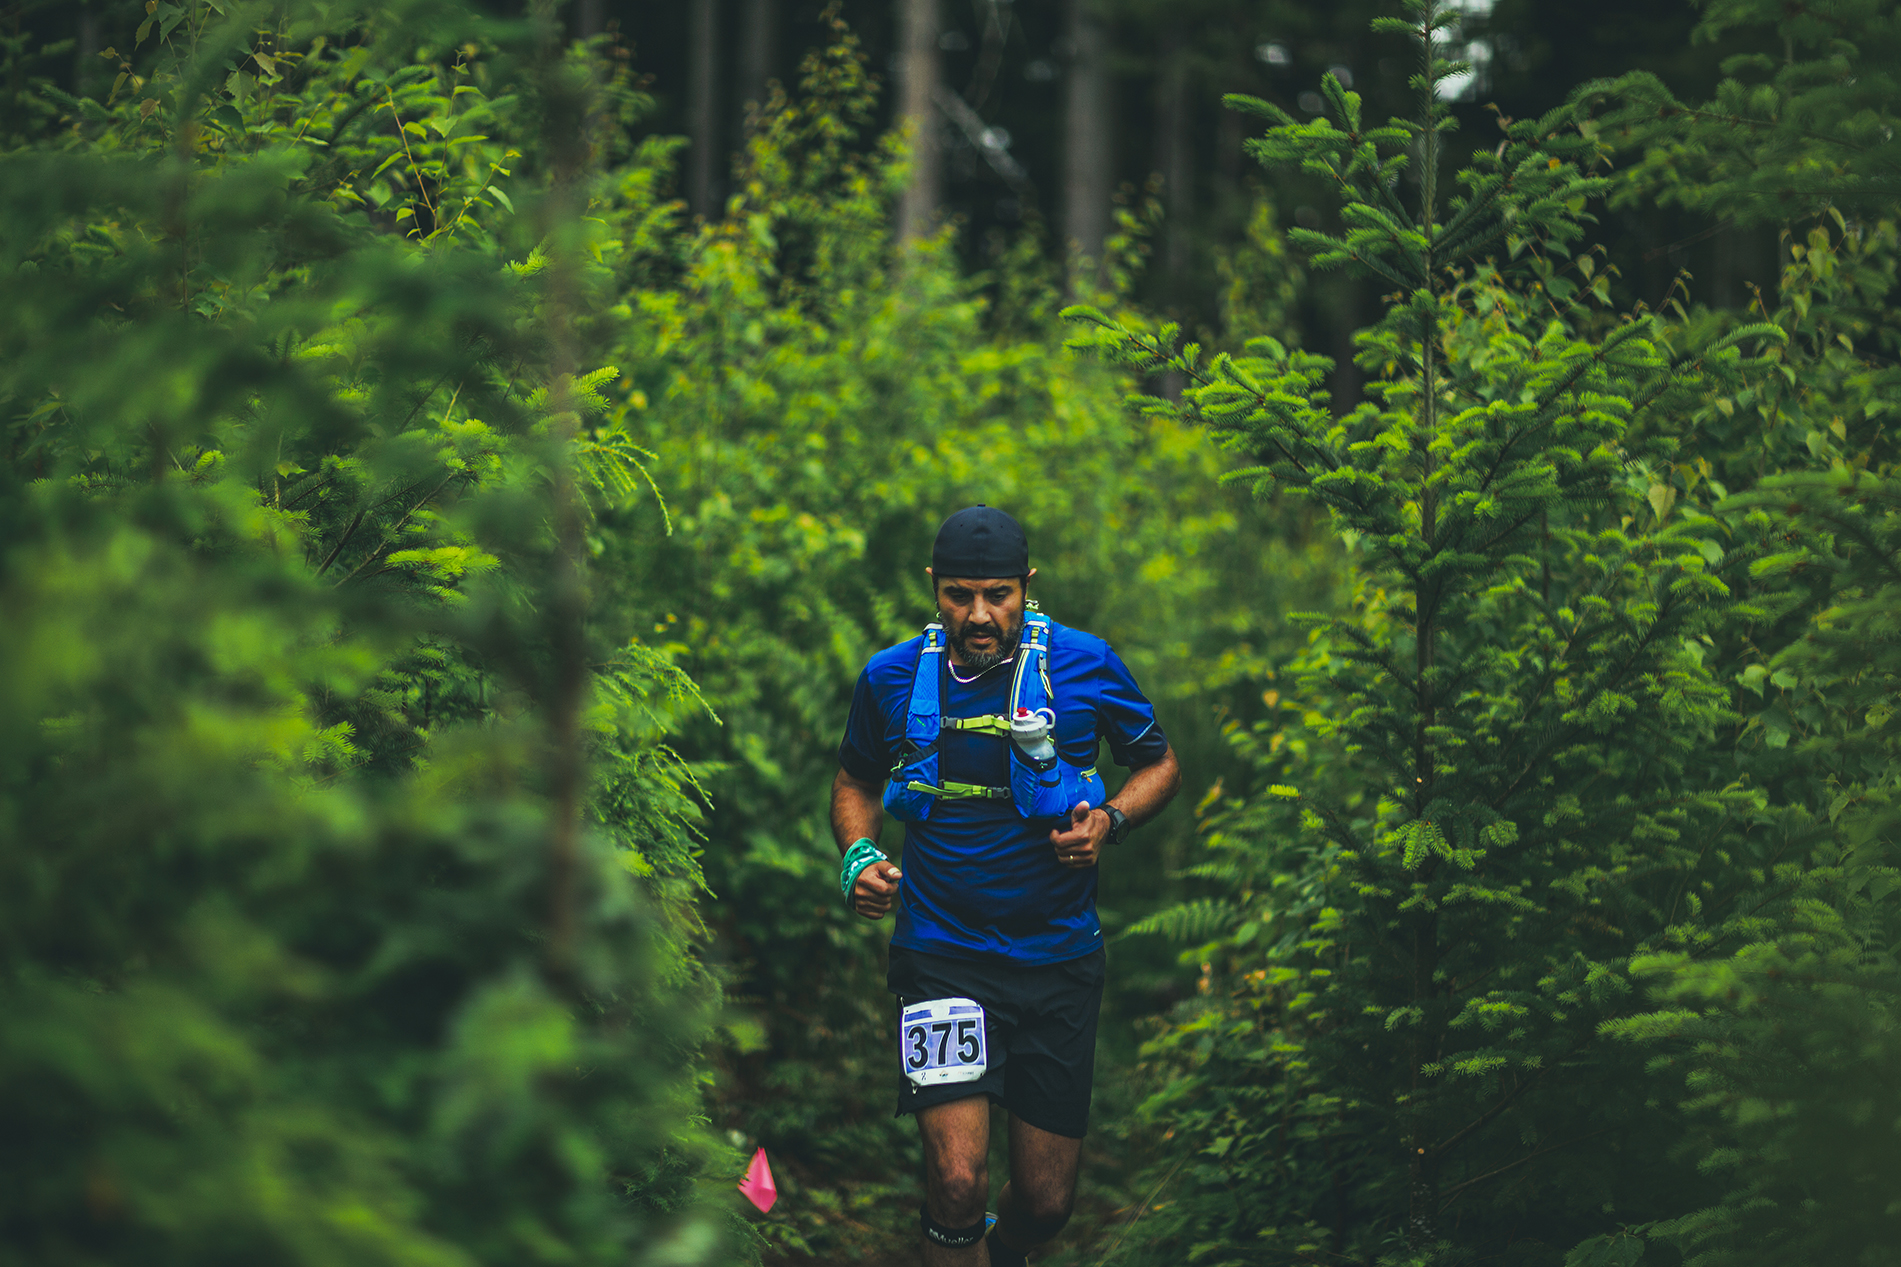 Fraser Valley Trail Races - Bear Mountain - IMG_2404 by Brice Ferre Studio - Vancouver Portrait Adventure and Athlete Photographer.jpg